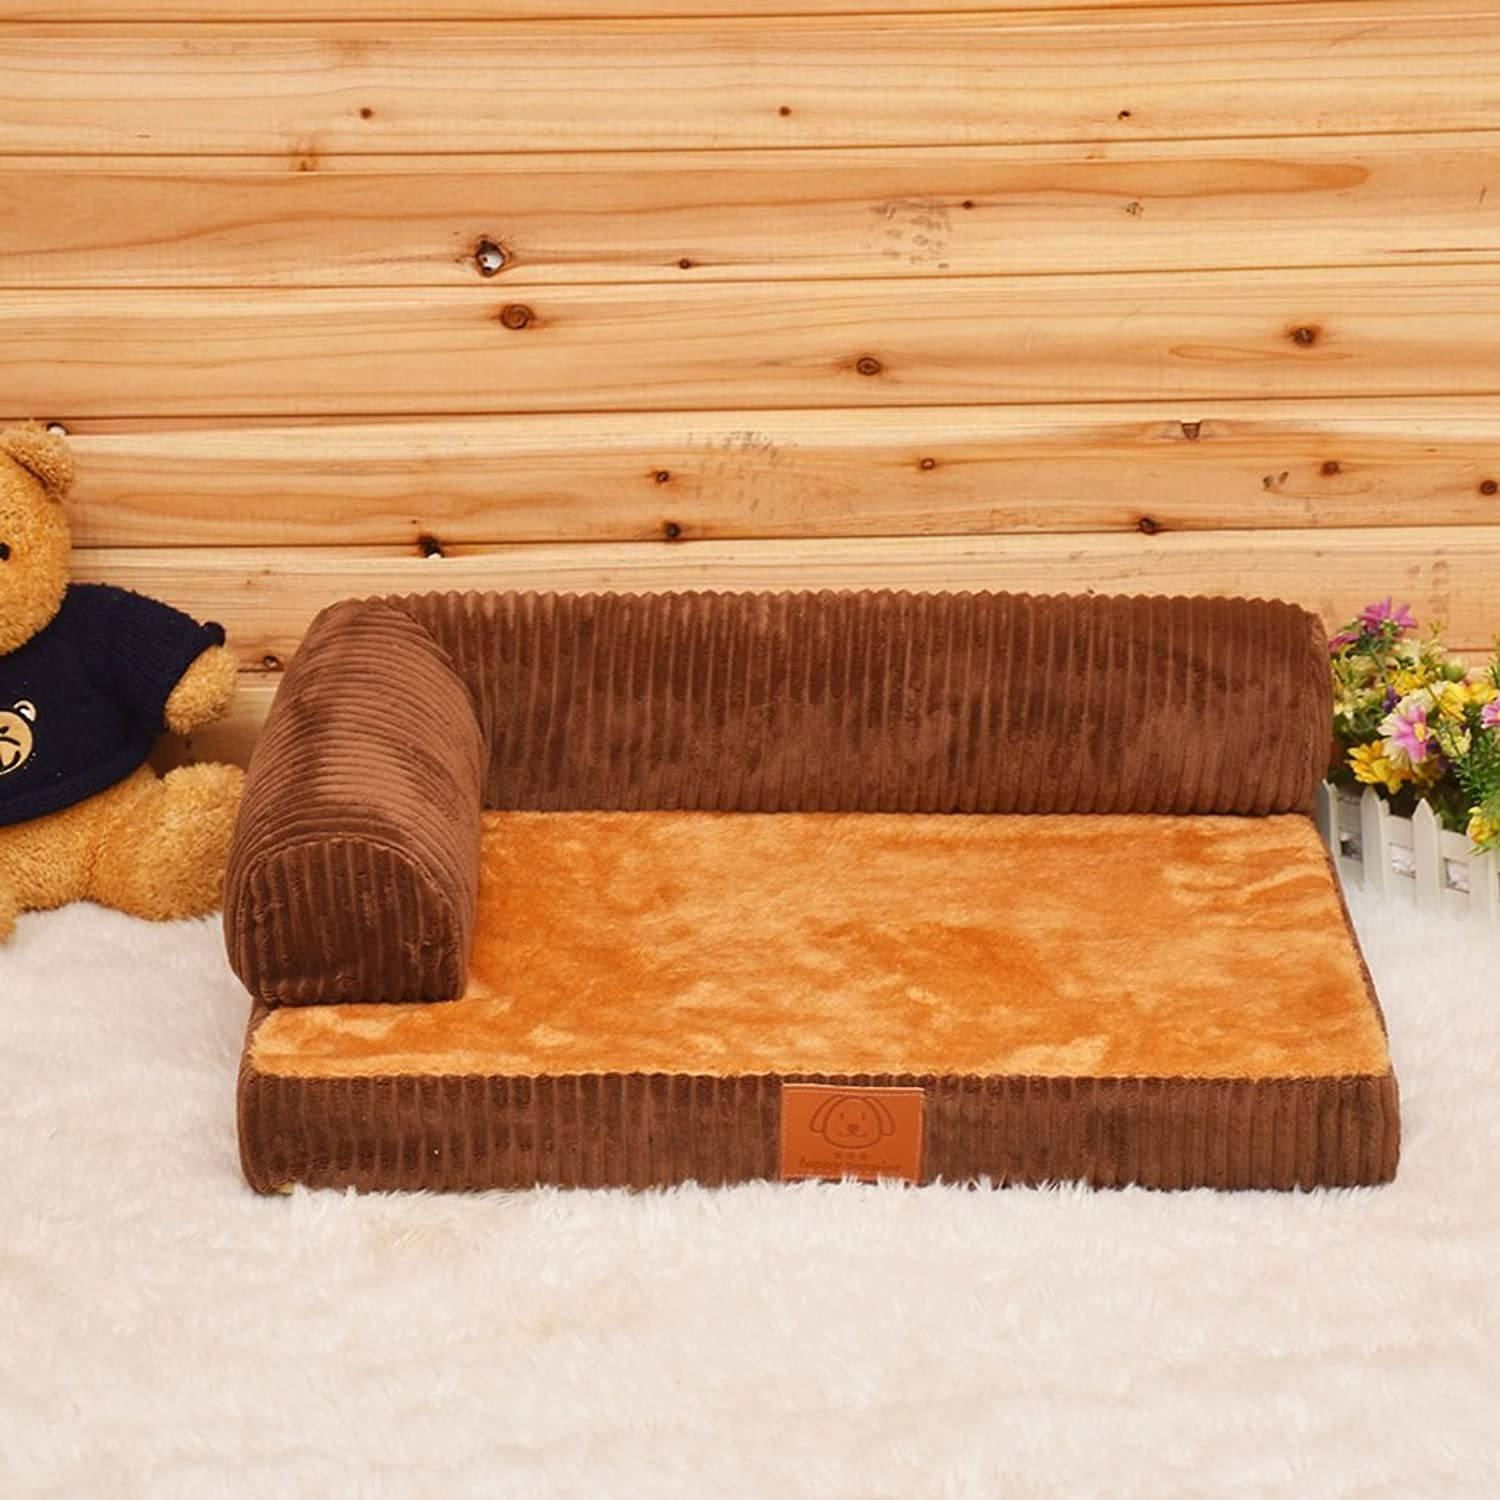 Deluxe Orthopedic Memory Foam Sofa Lounge Dog Bed (Size   M685717cm)